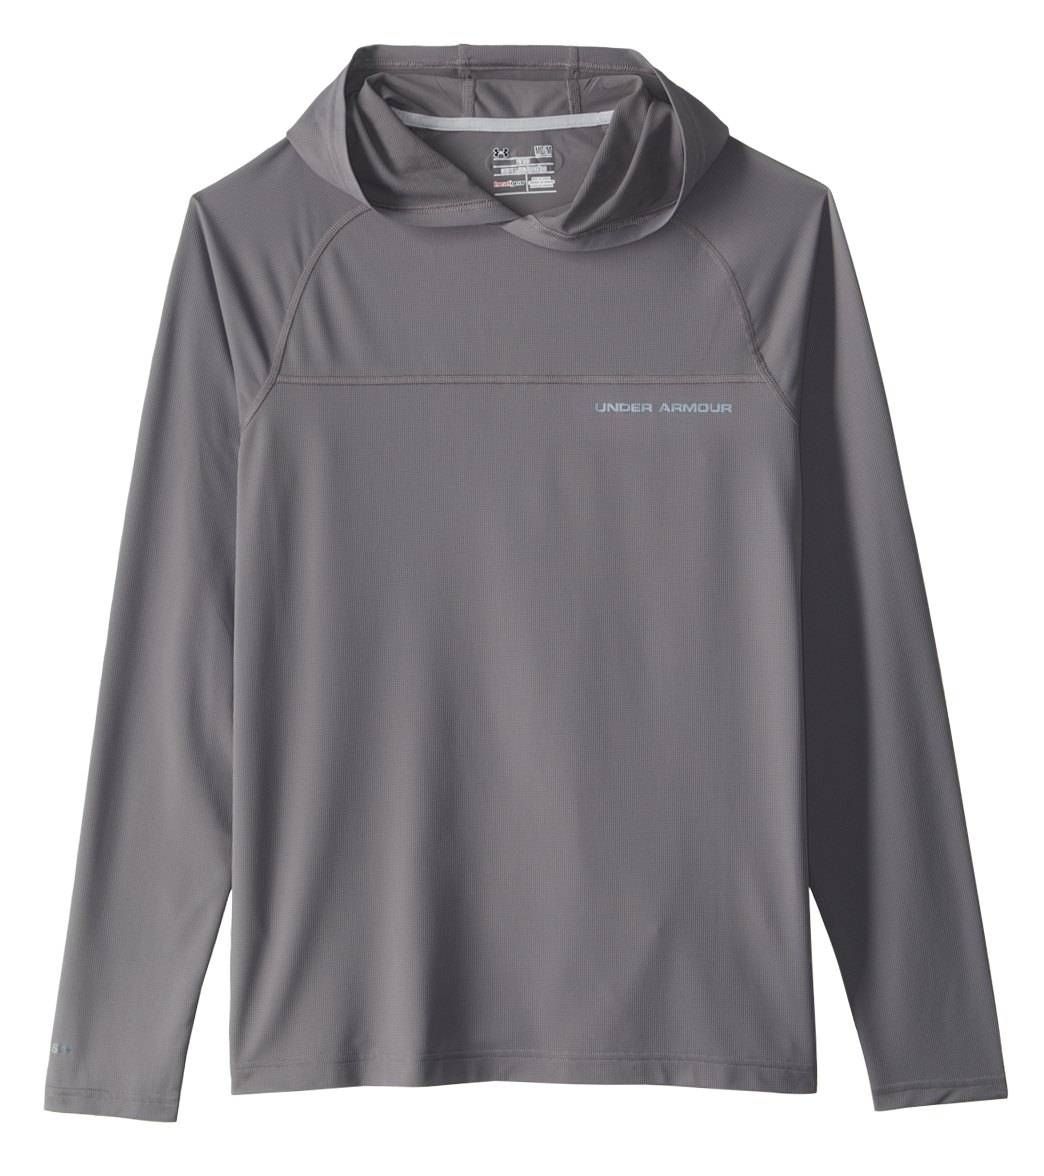 d1180a074e Under Armour Men's Sunblock Long Sleeve Rashguard Hoodie